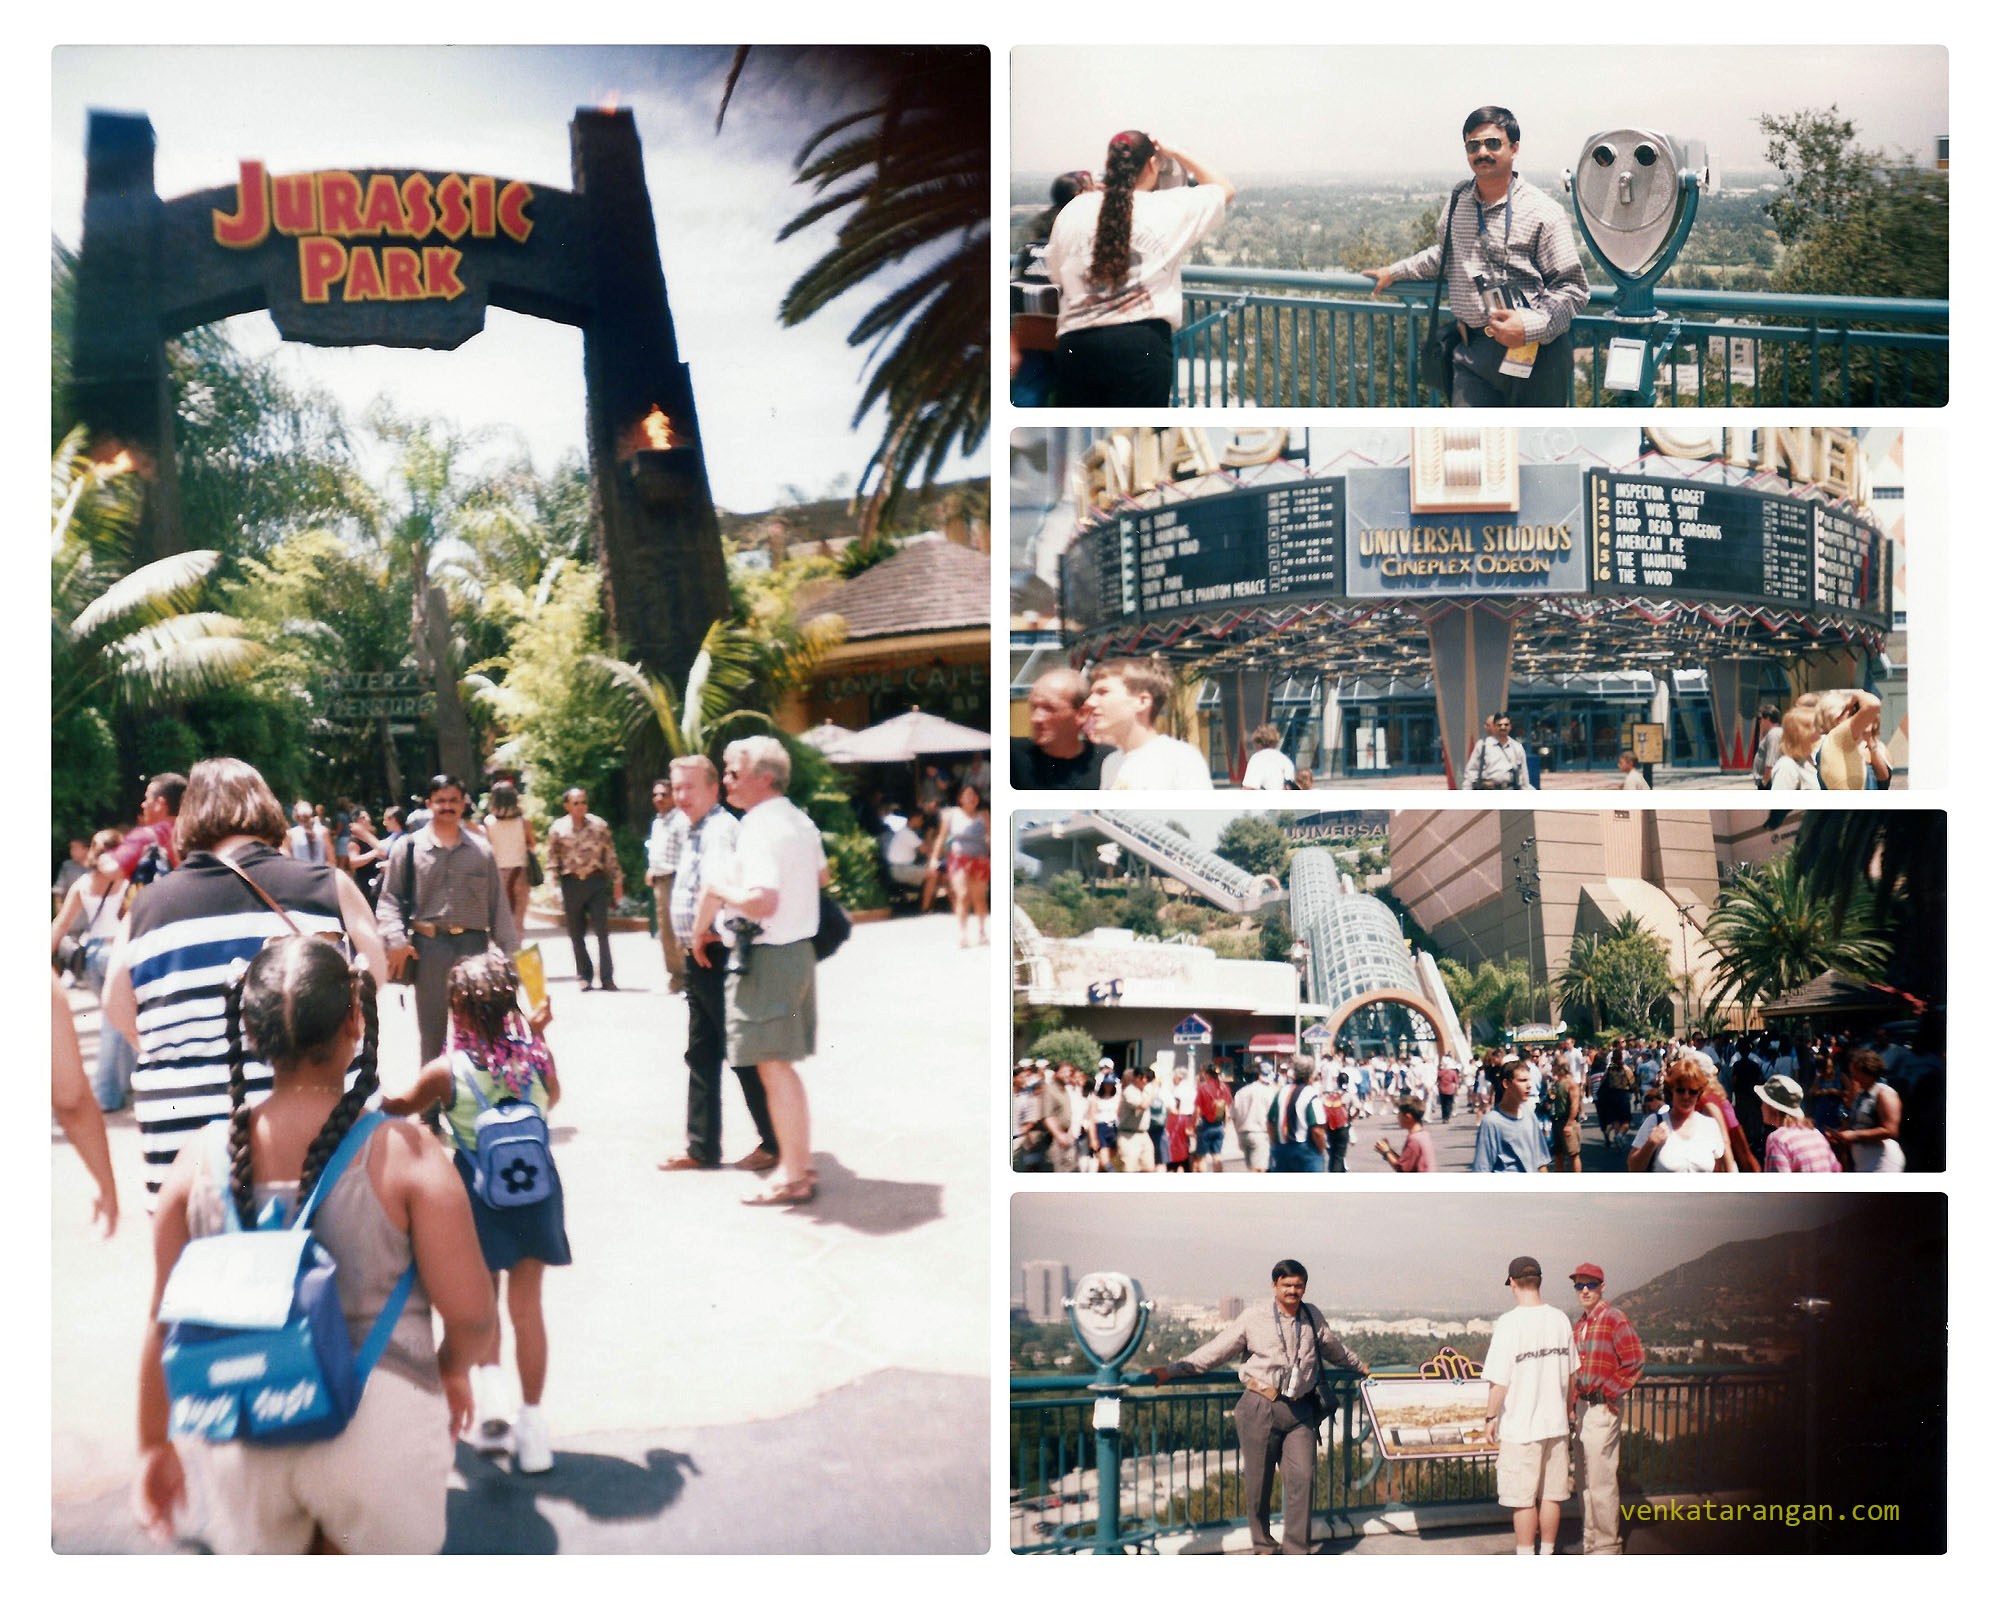 Universal Studios Hollywood, Los Angeles in 1999